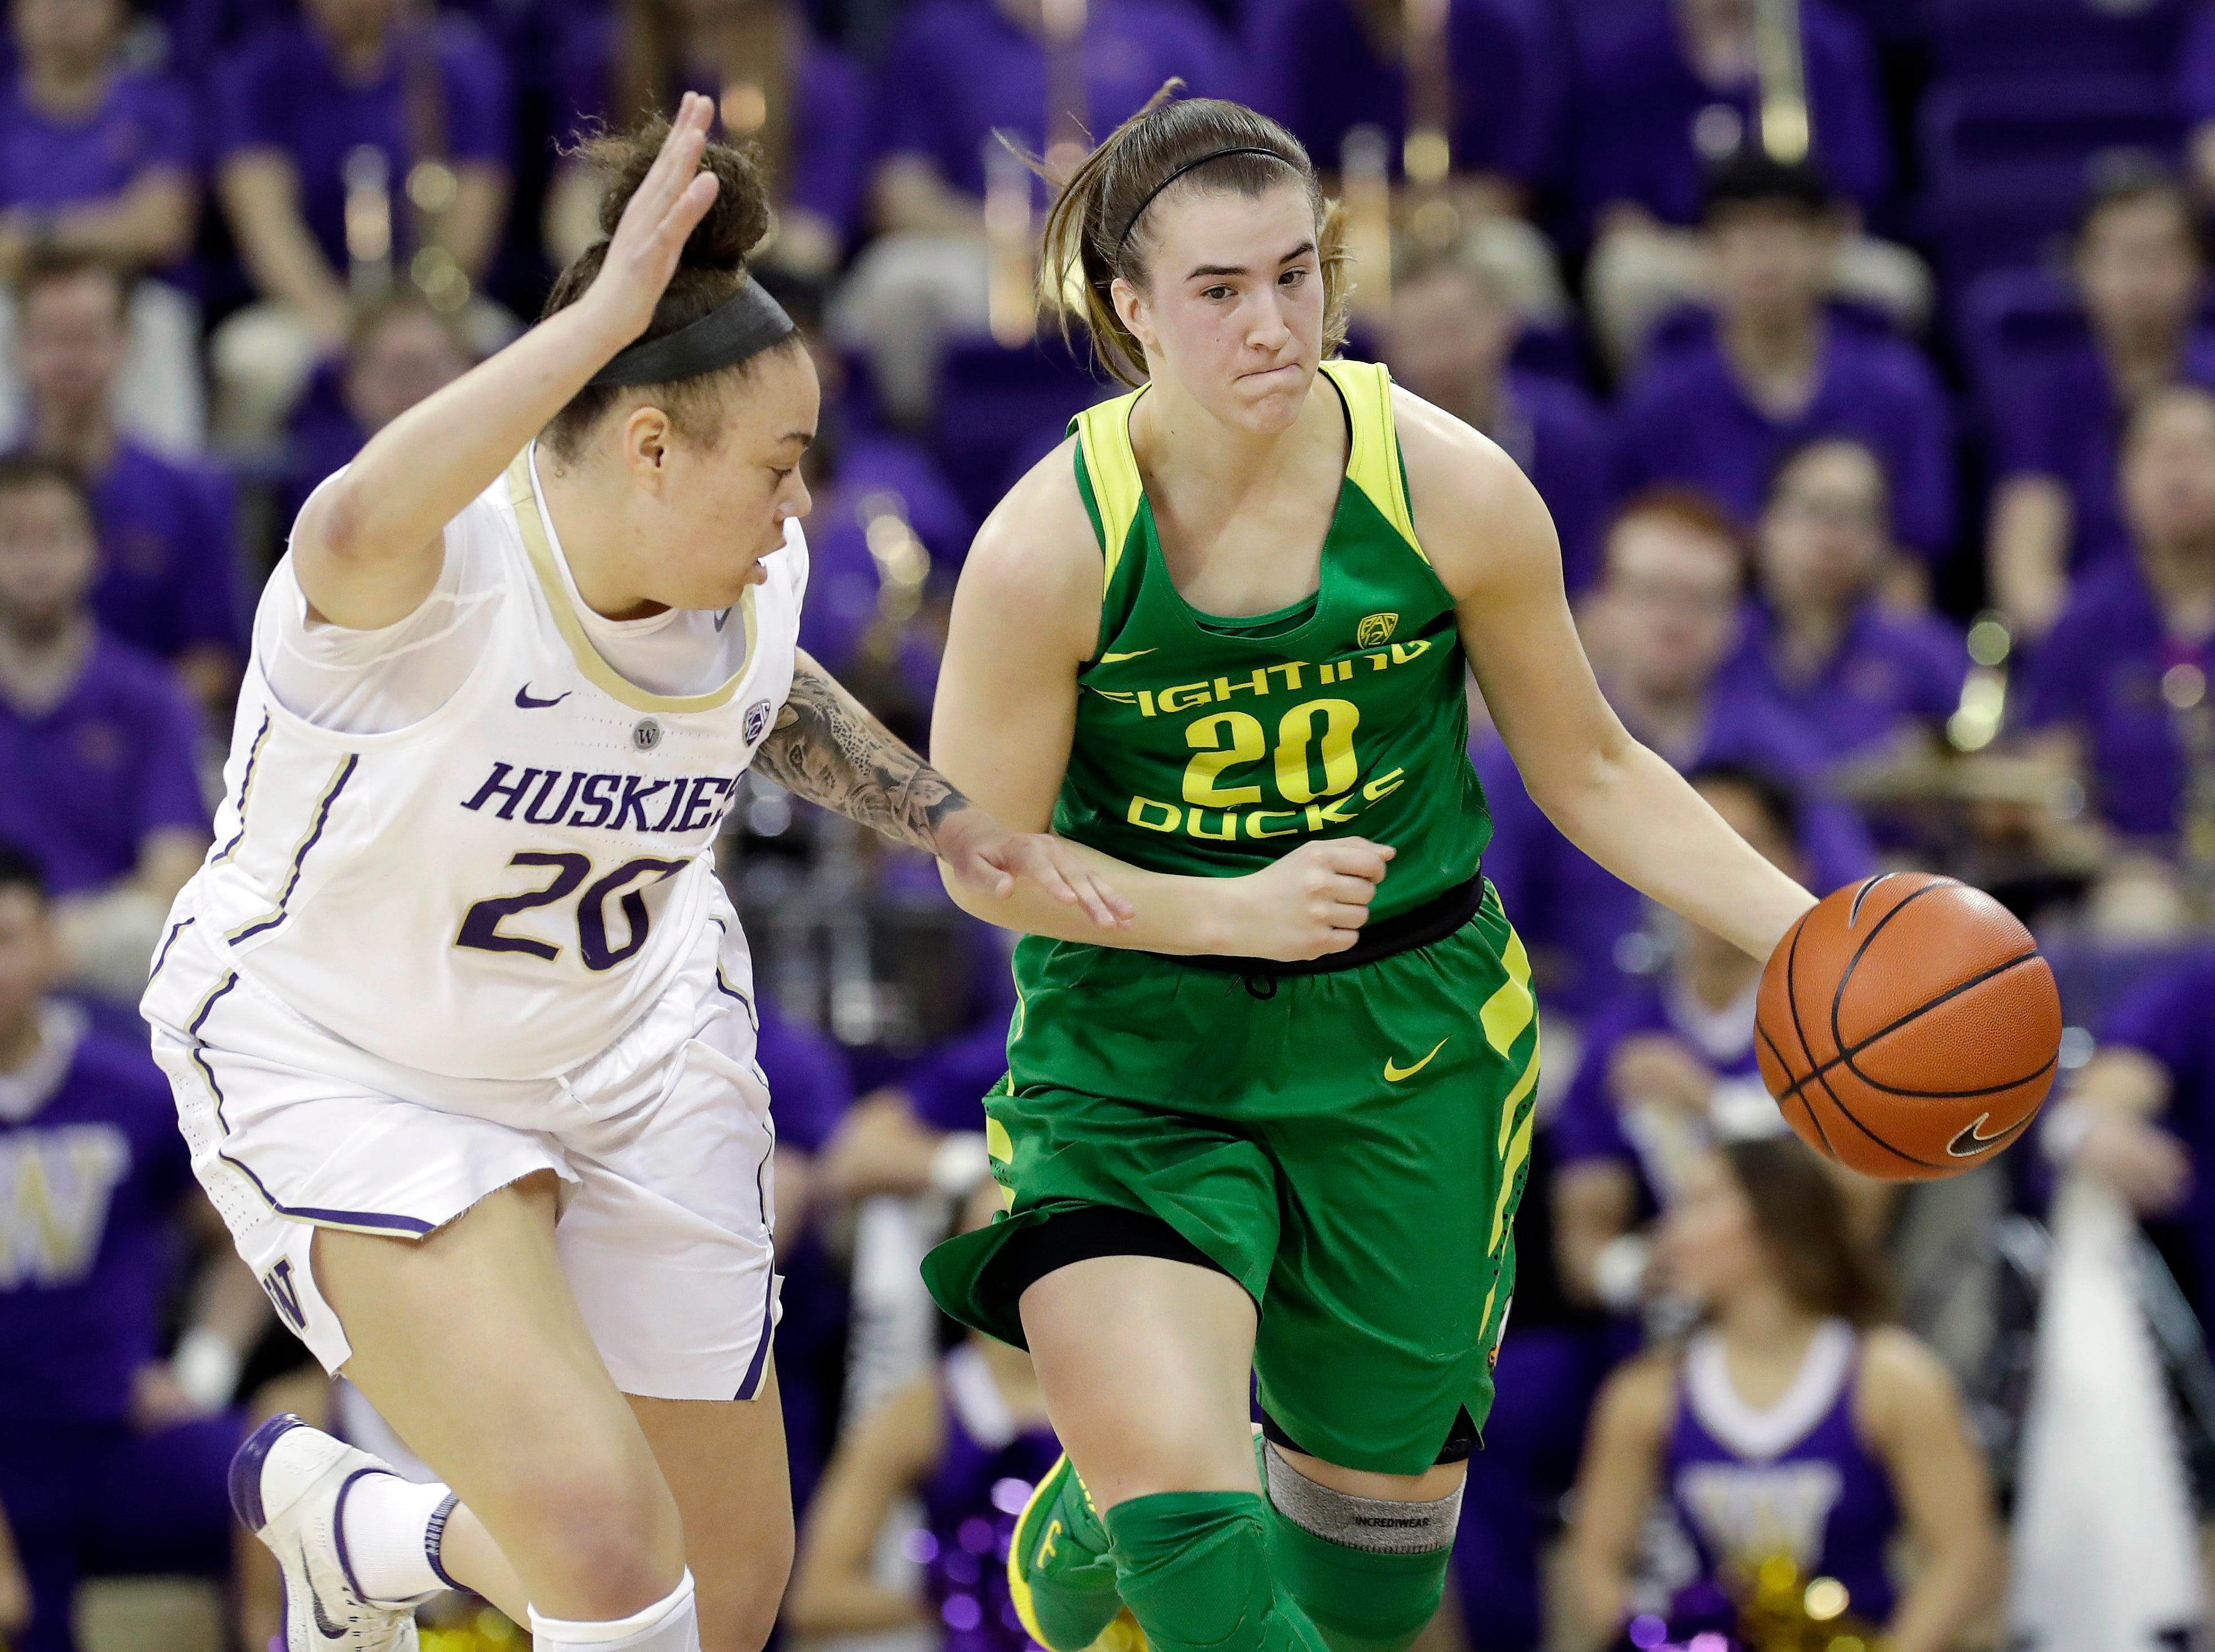 Oregon's Sabrina Ionescu, right, drives upcourt as Washington's Khayla Rooks defends in the first half of an NCAA college basketball game Sunday, Jan. 27, 2019, in Seattle.